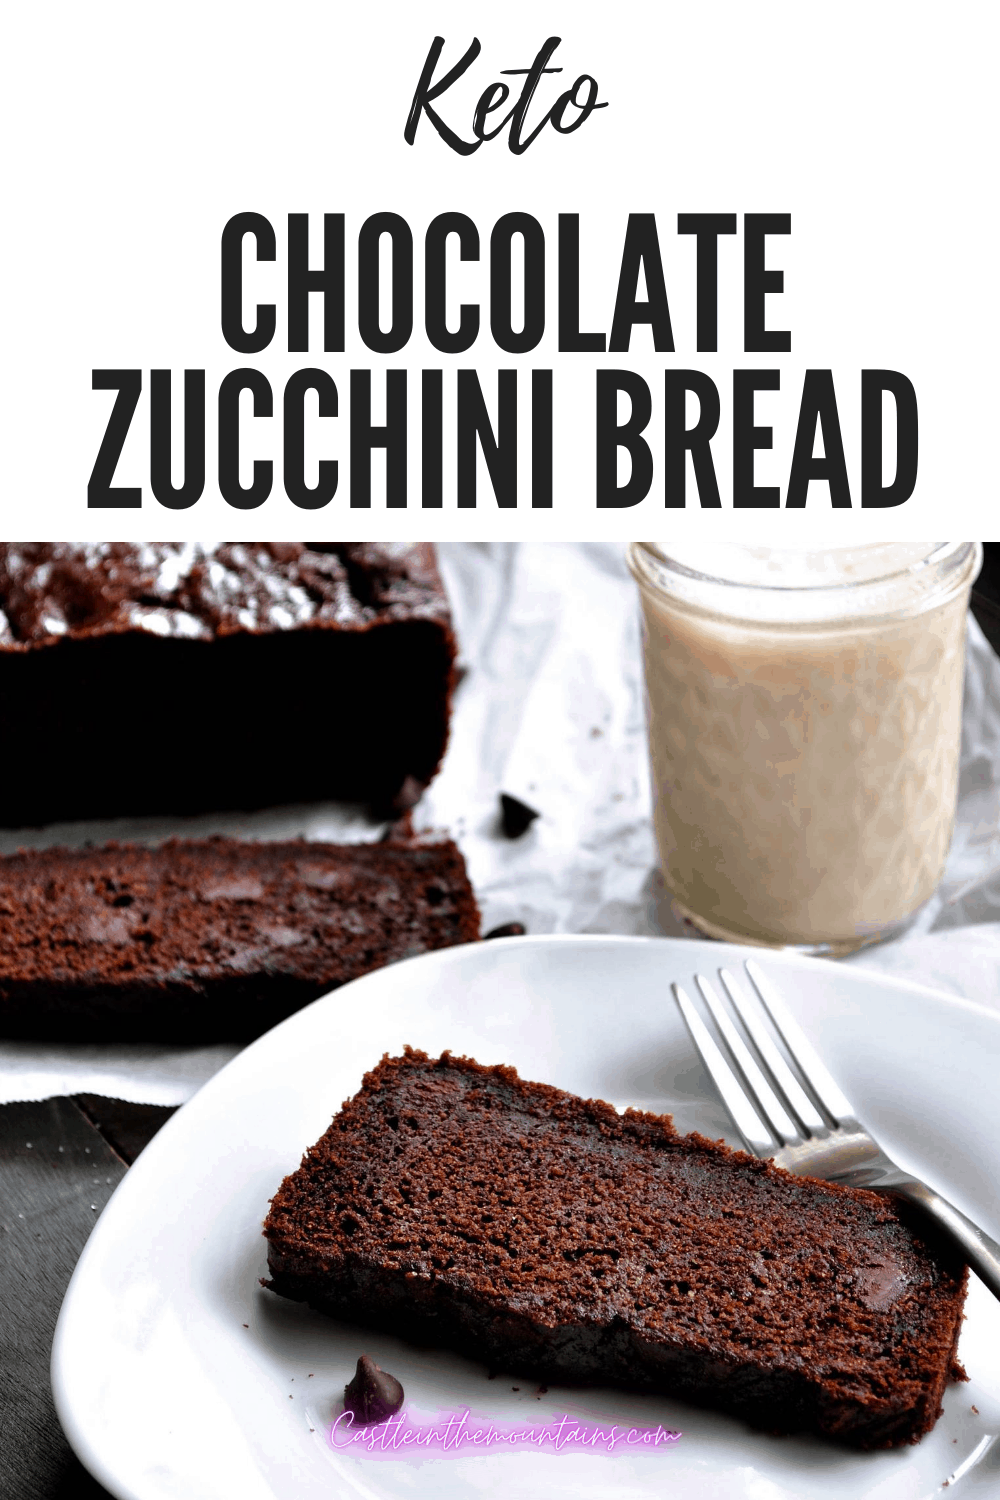 Keto Chocolate Zucchini Bread